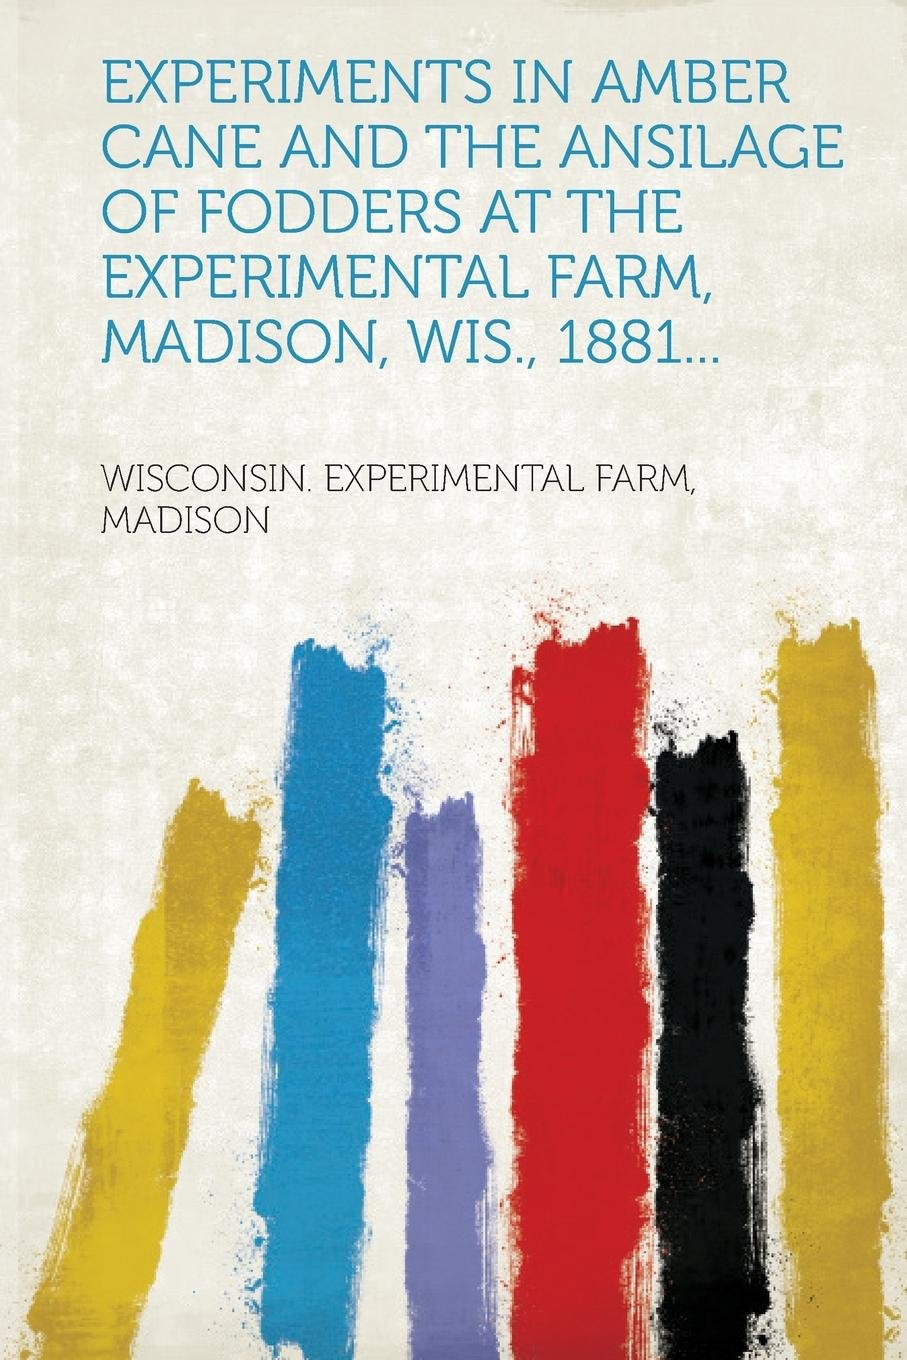 Experiments in Amber Cane and the Ansilage of Fodders at the Experimental Farm, Madison, Wis., 1881... ePub fb2 ebook